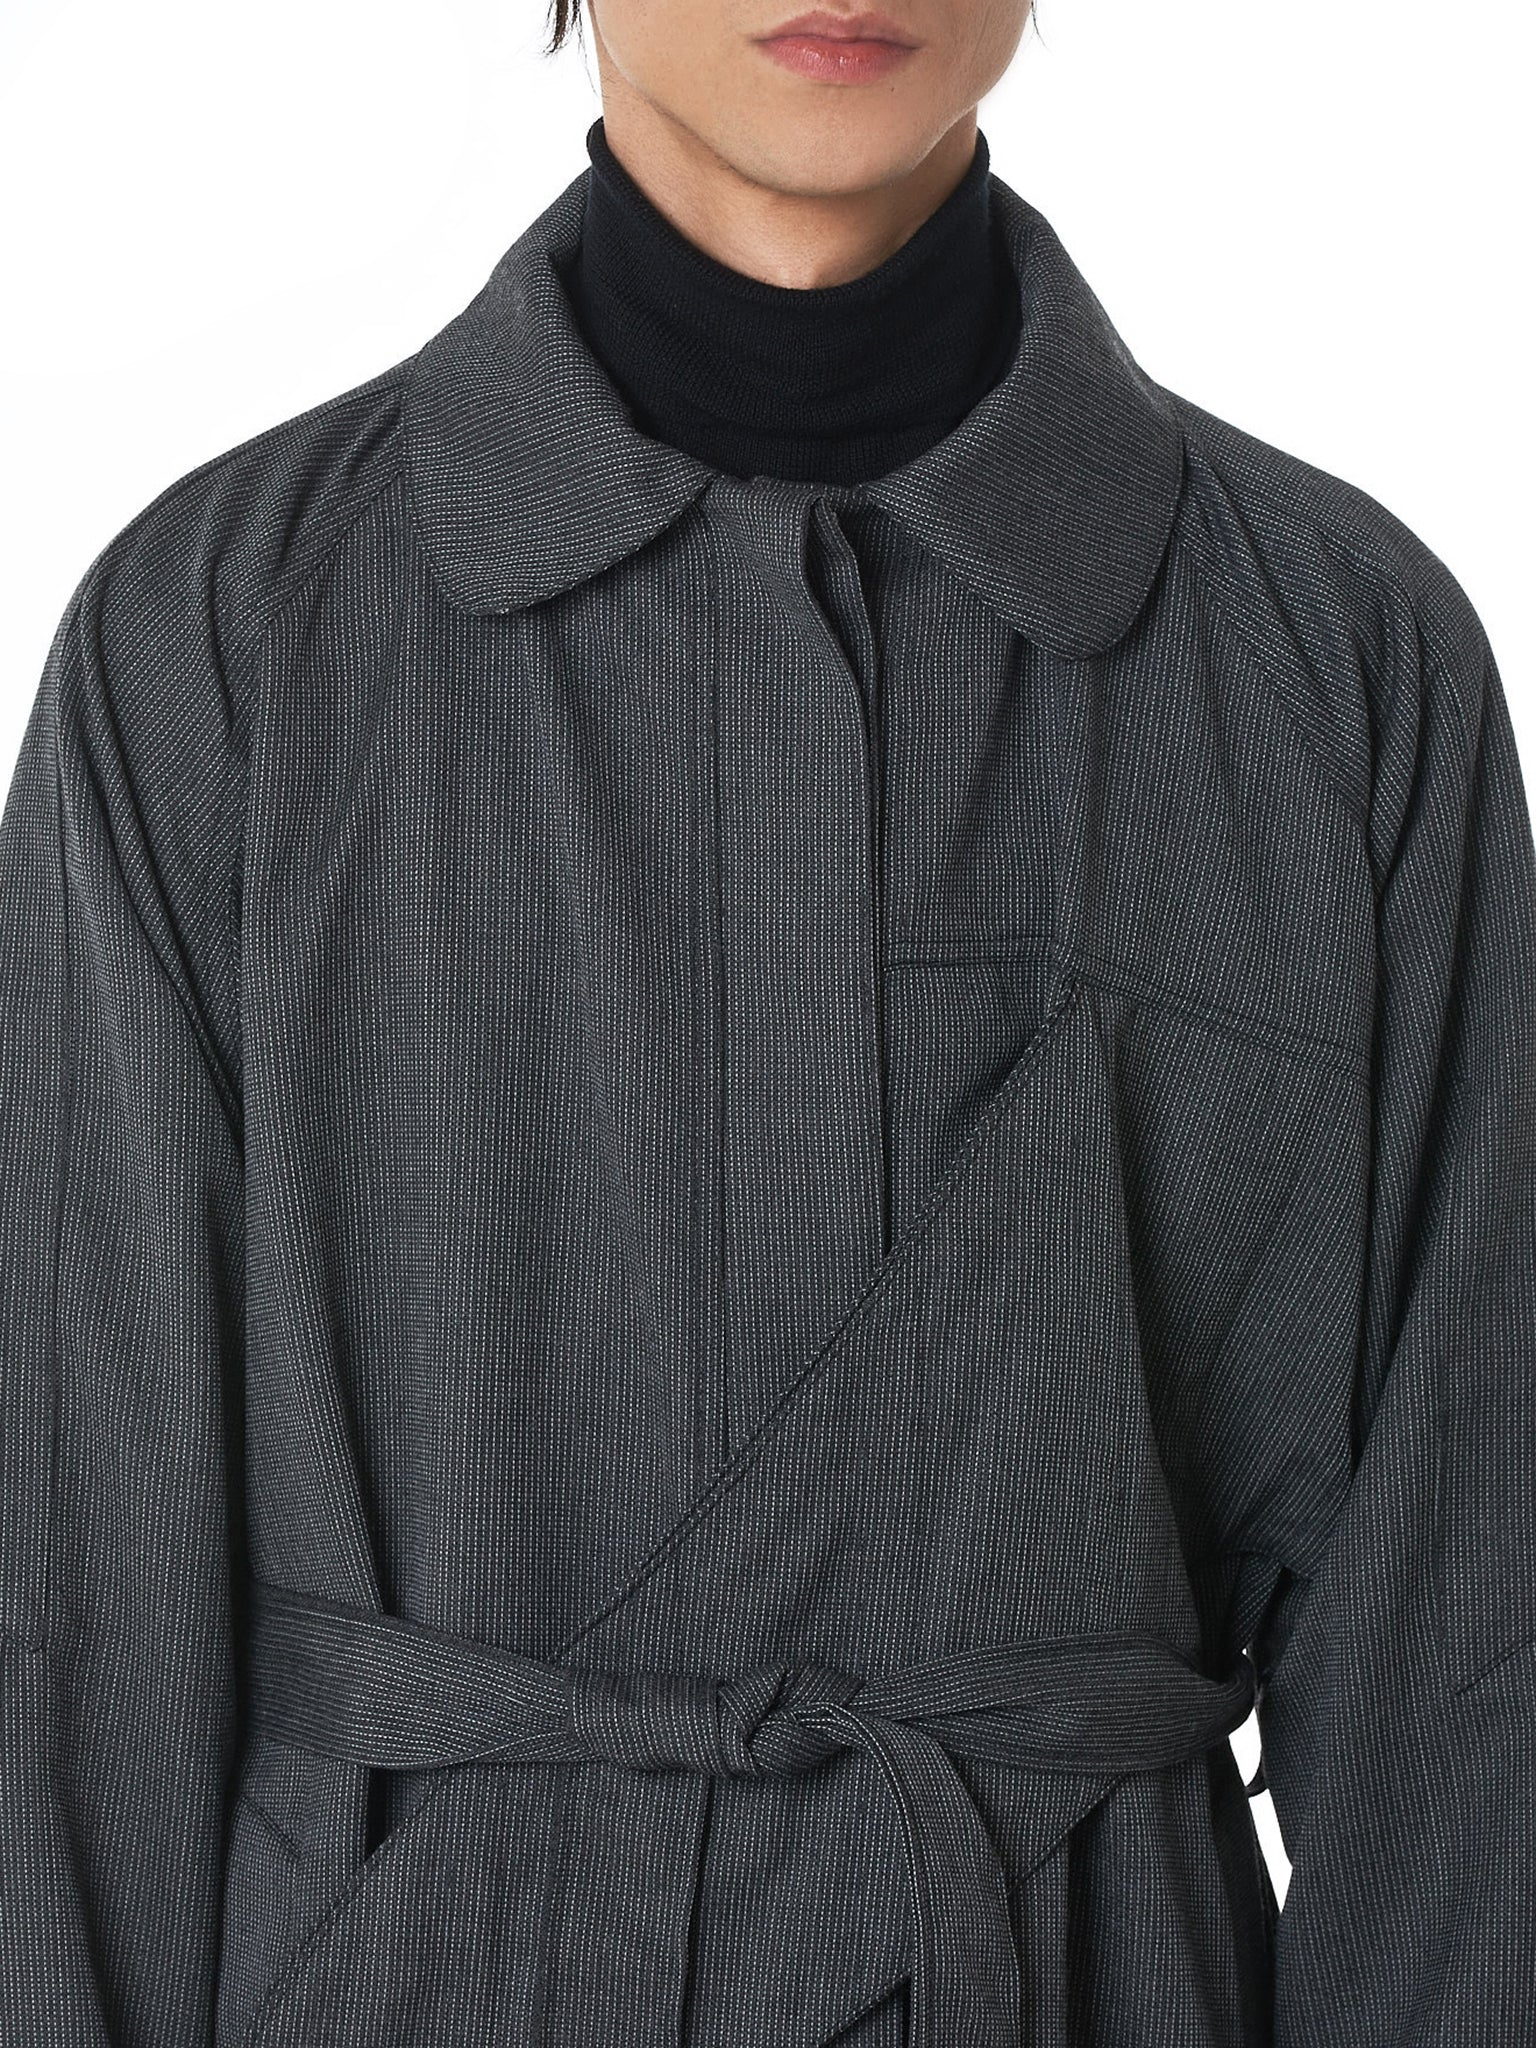 Sanchez-Kane Trench Coat - Hlorenzo Detail 4